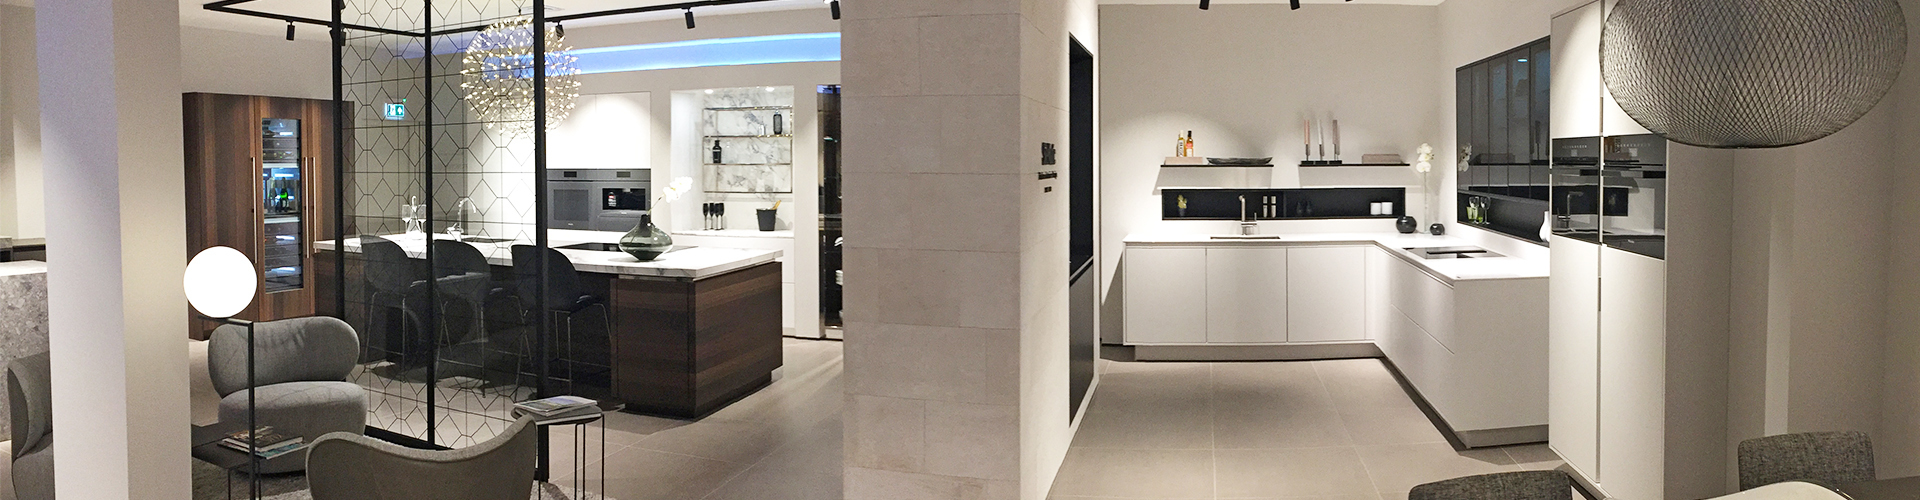 Onze SieMatic Boutique is geopend!